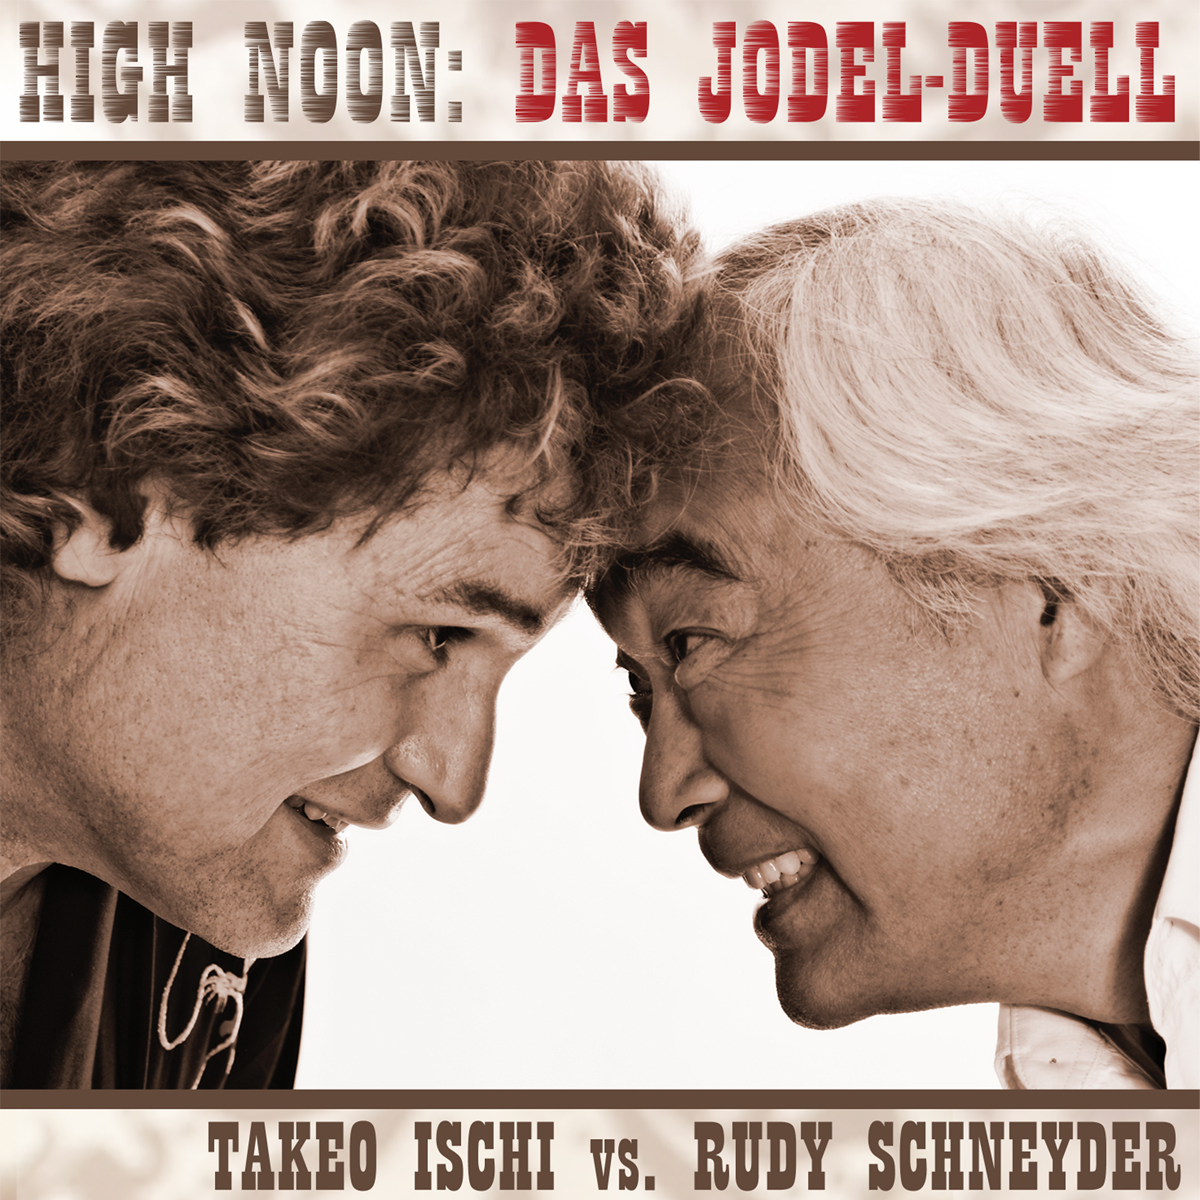 Takeo Ischi vs Rudy Schneyder - Das Jodler-Duell (Single)